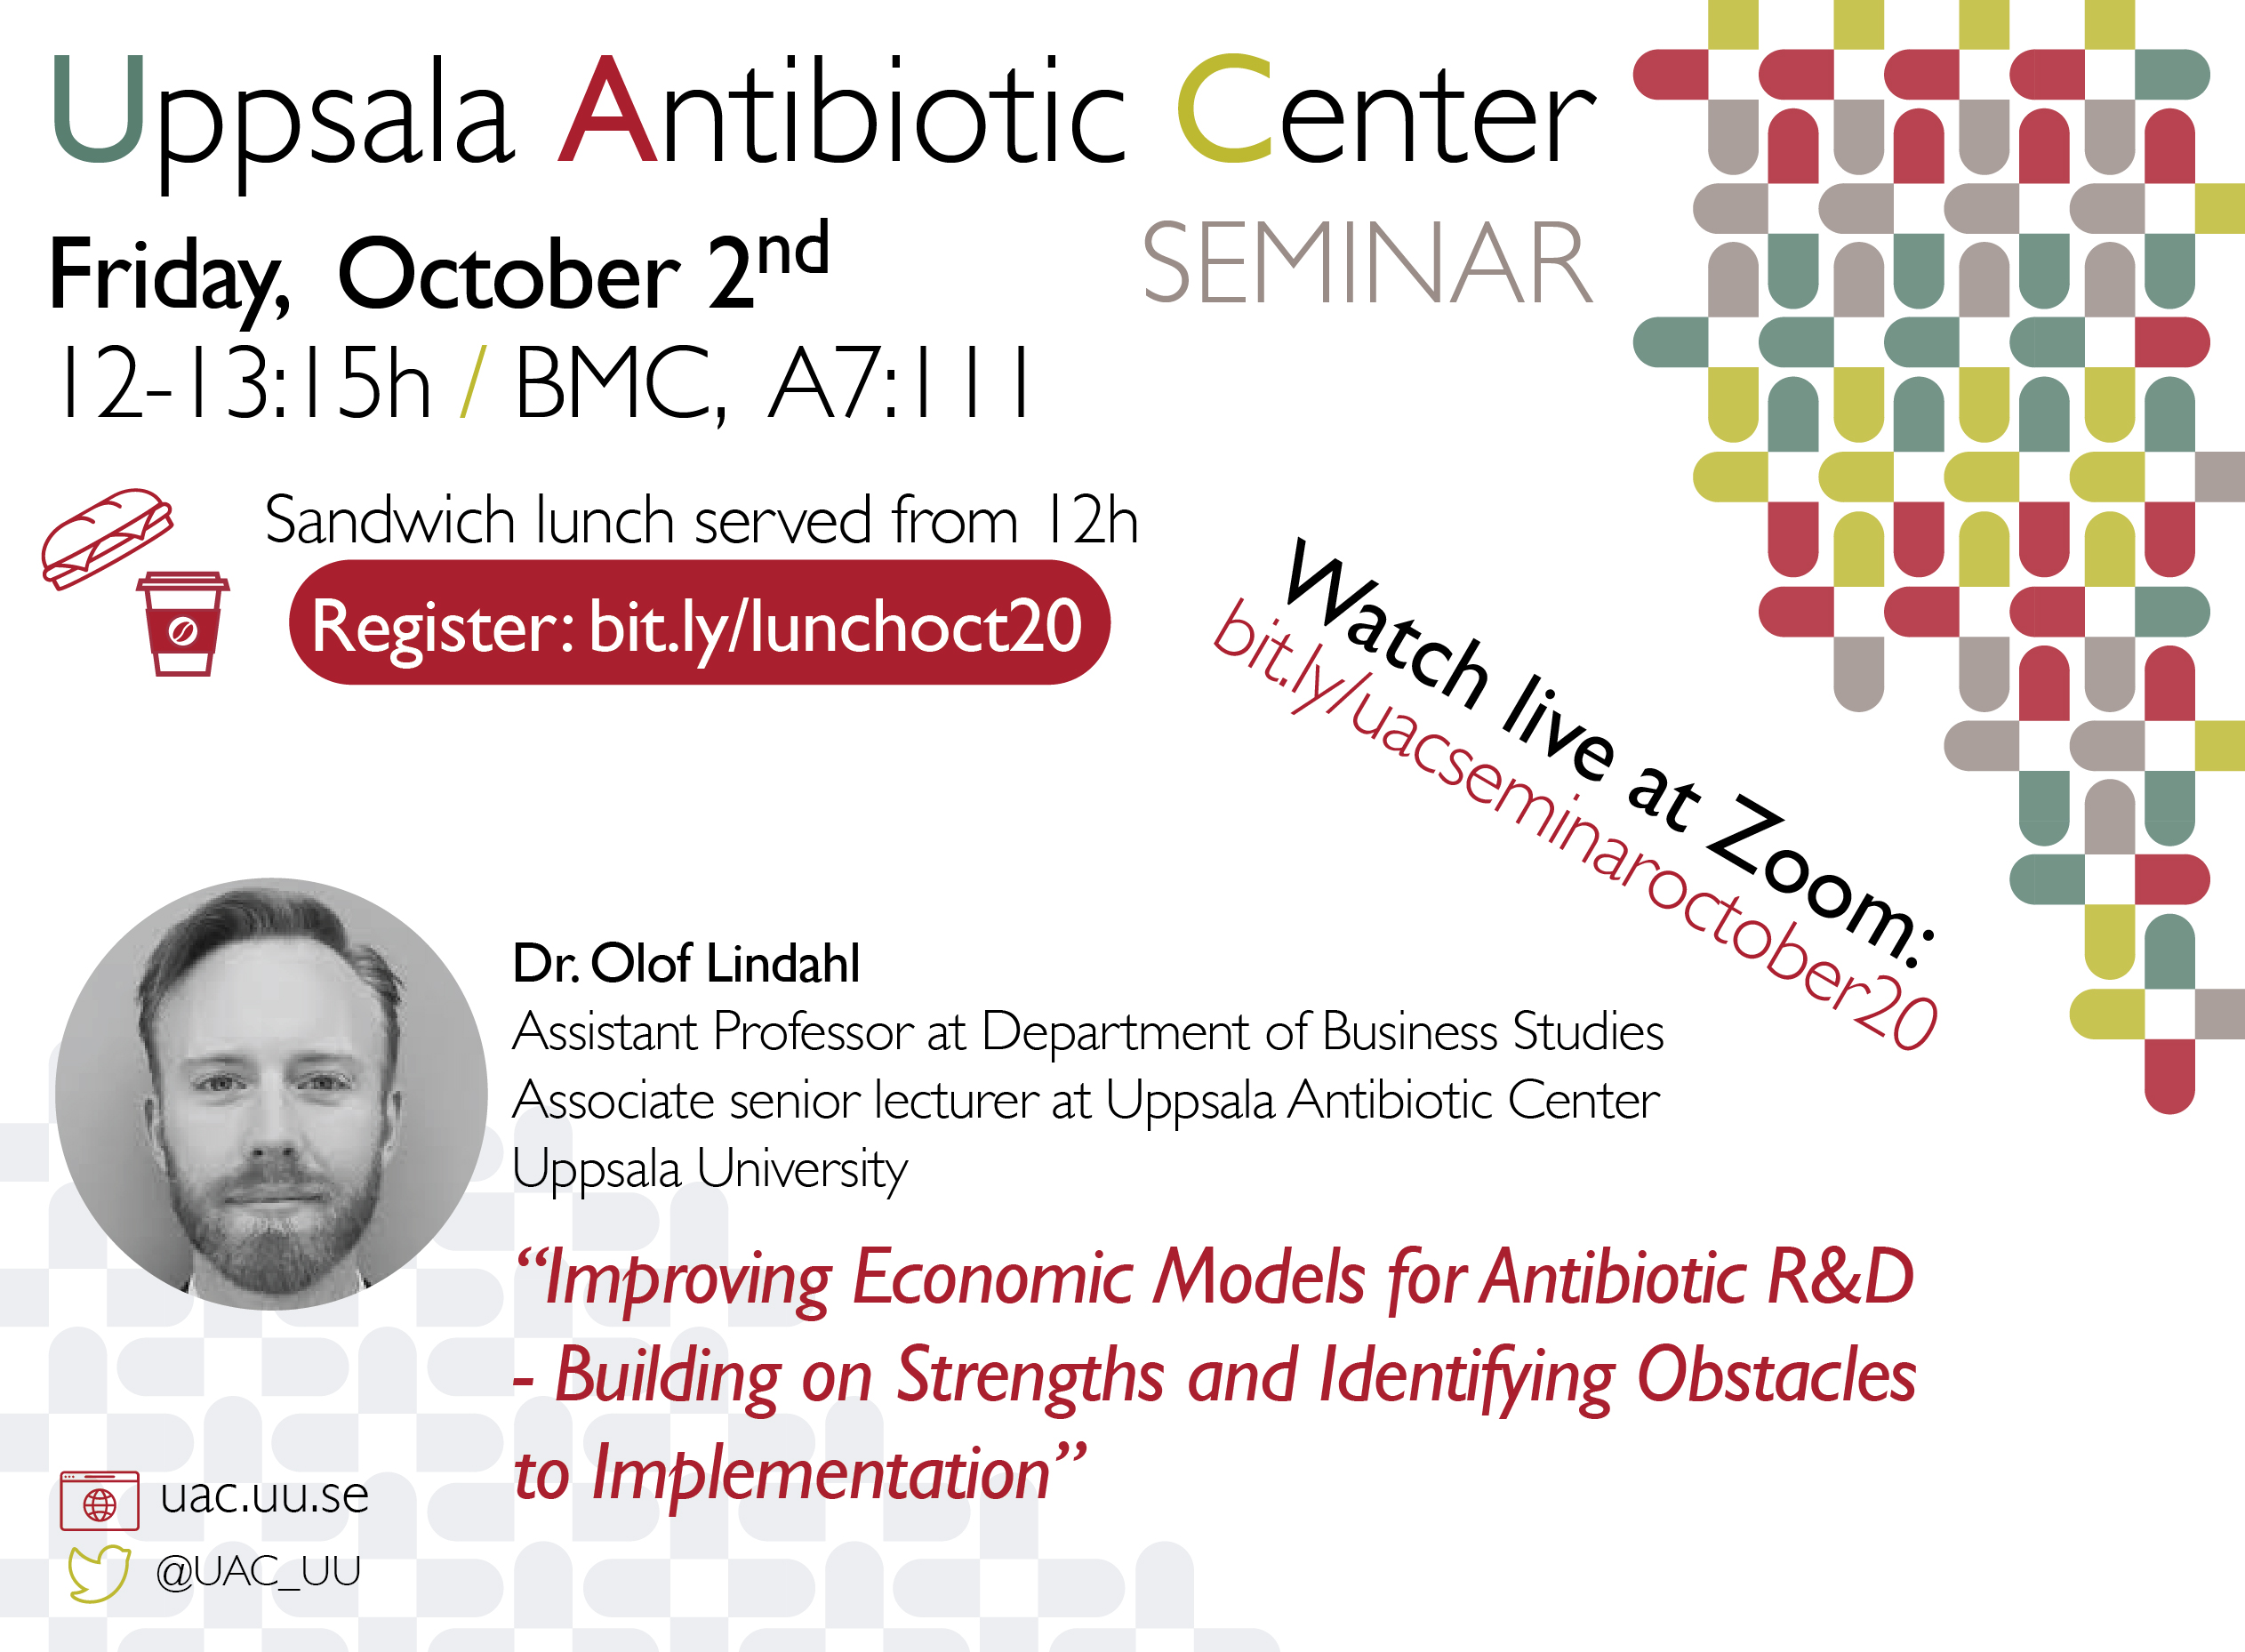 UAC Seminar: Improving Economic Models for Antibiotic R&D - Building on Strengths and Identifying Obstacles to Implementation